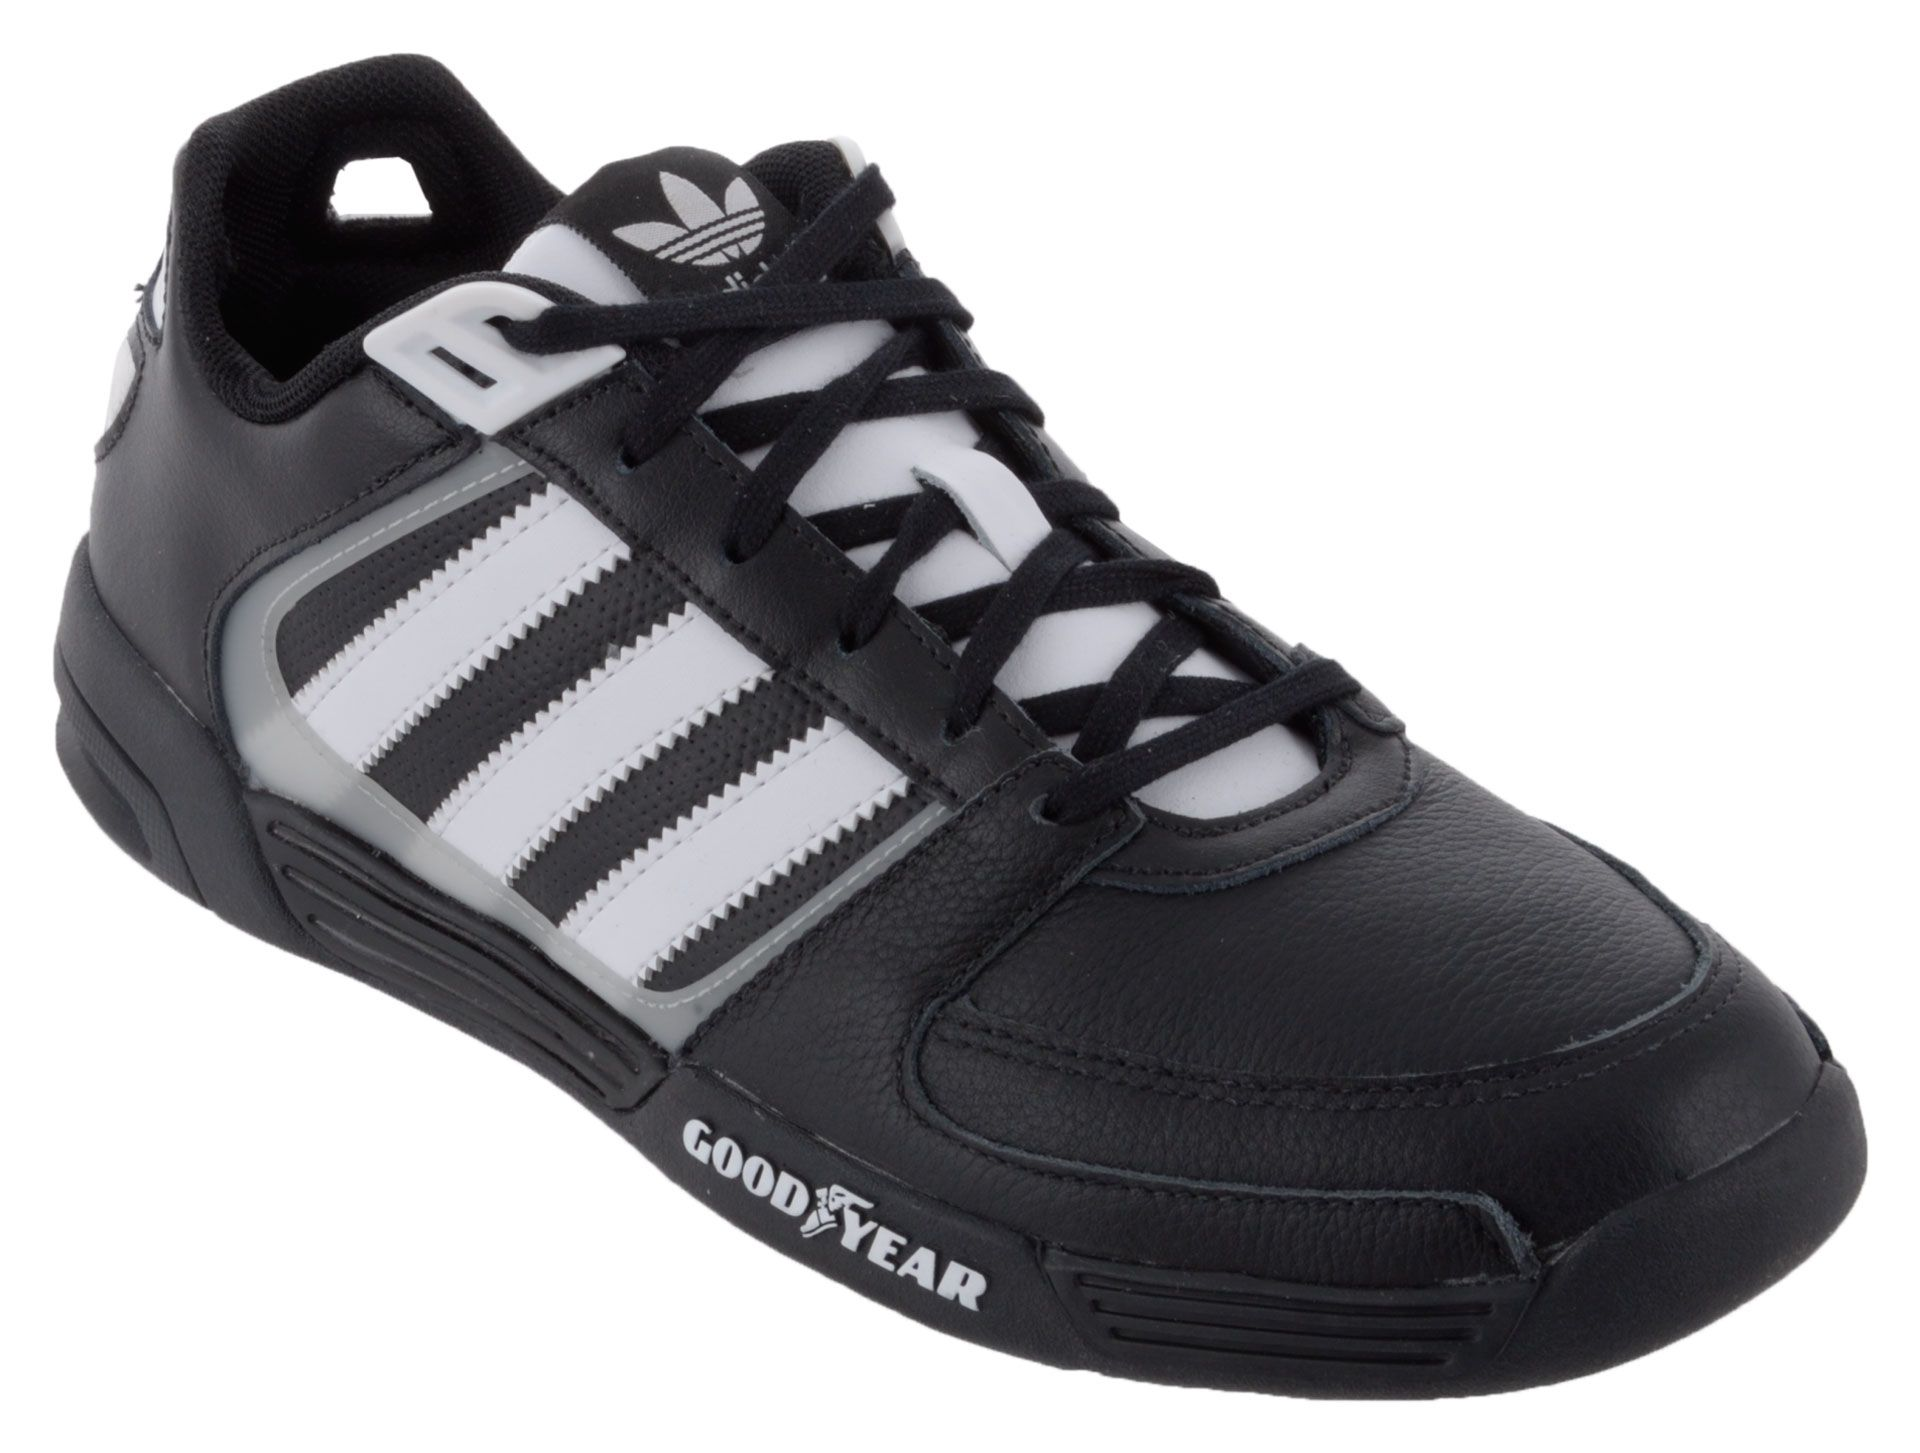 adidas driving shoes - Bing Images  fe26c4ffb